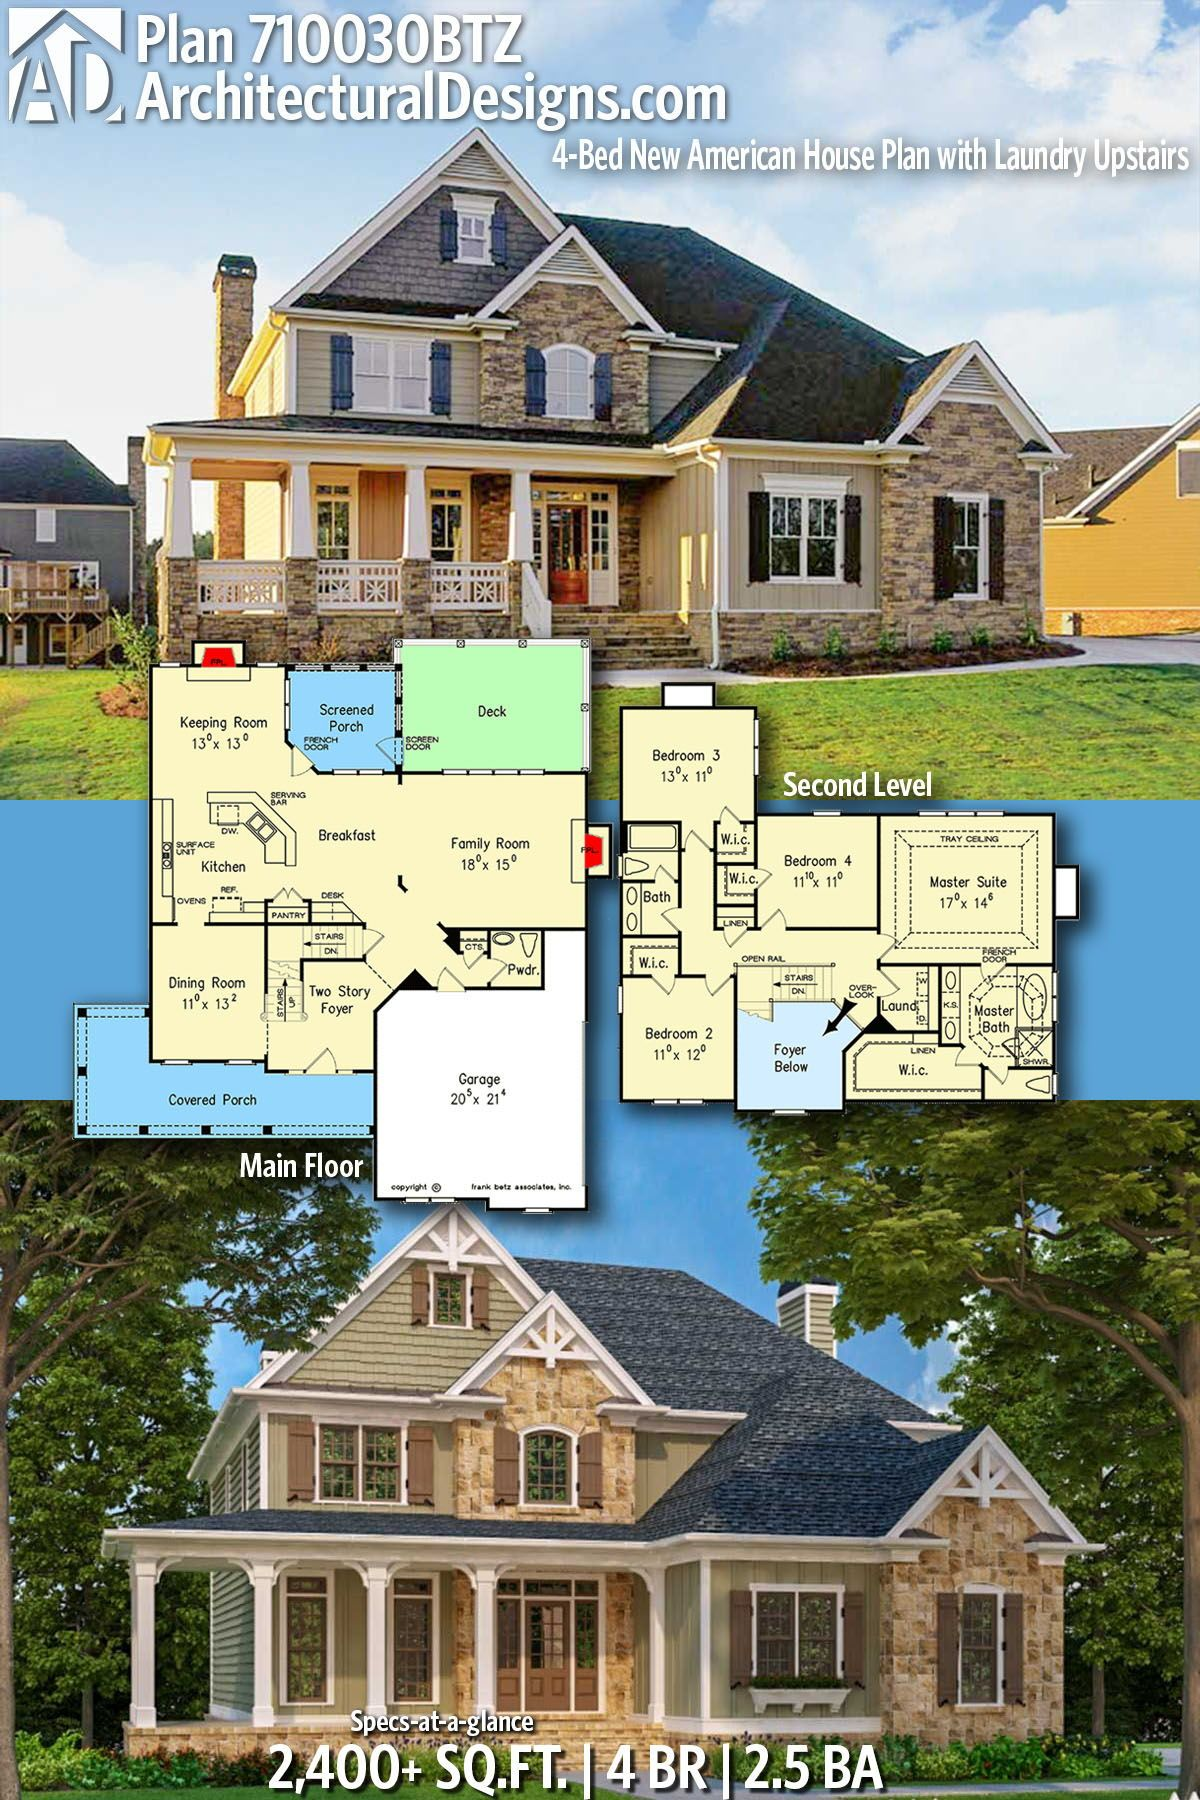 Plan 710030btz 4 Bed New American House Plan With Laundry Upstairs Sims House Design House Plans House Blueprints